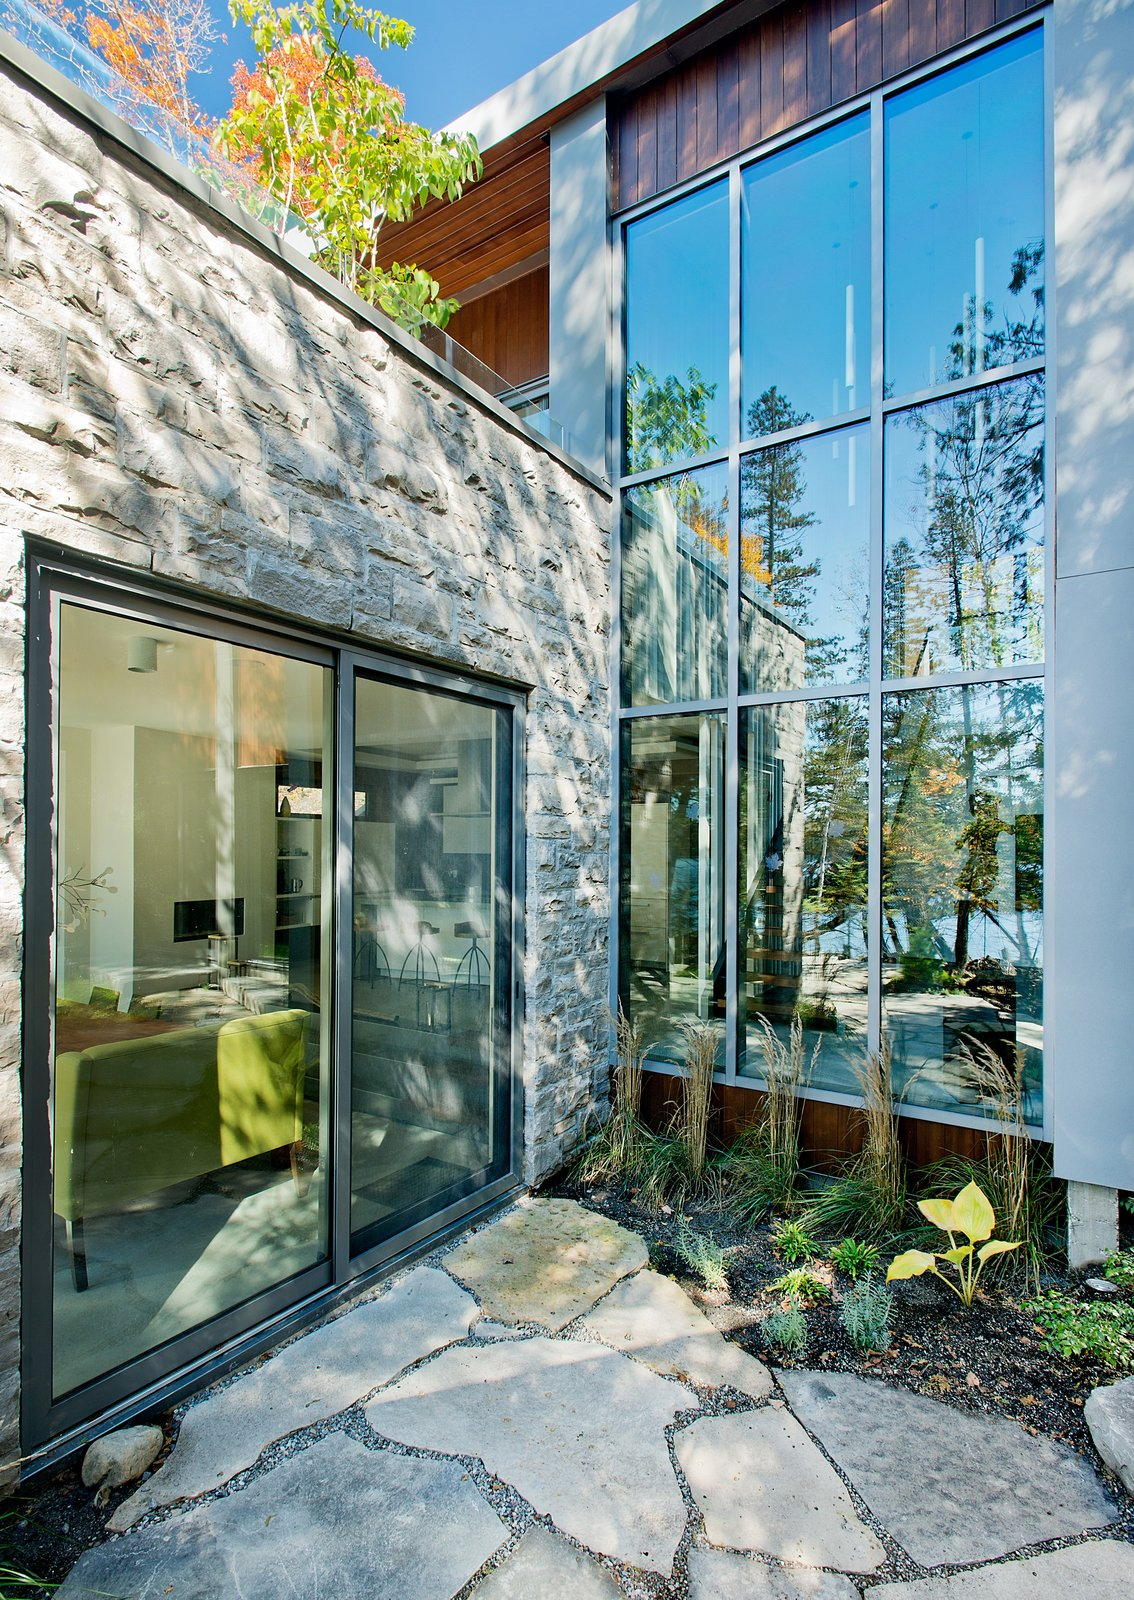 """While the homeowners and their guests have plenty of opportunities to view the outdoors, thanks in large part to windows and doors by Alumilex, an abundance of cedars offers privacy from the outside looking in. """"We wanted to cut the least amount of trees,"""" Tremblay said."""